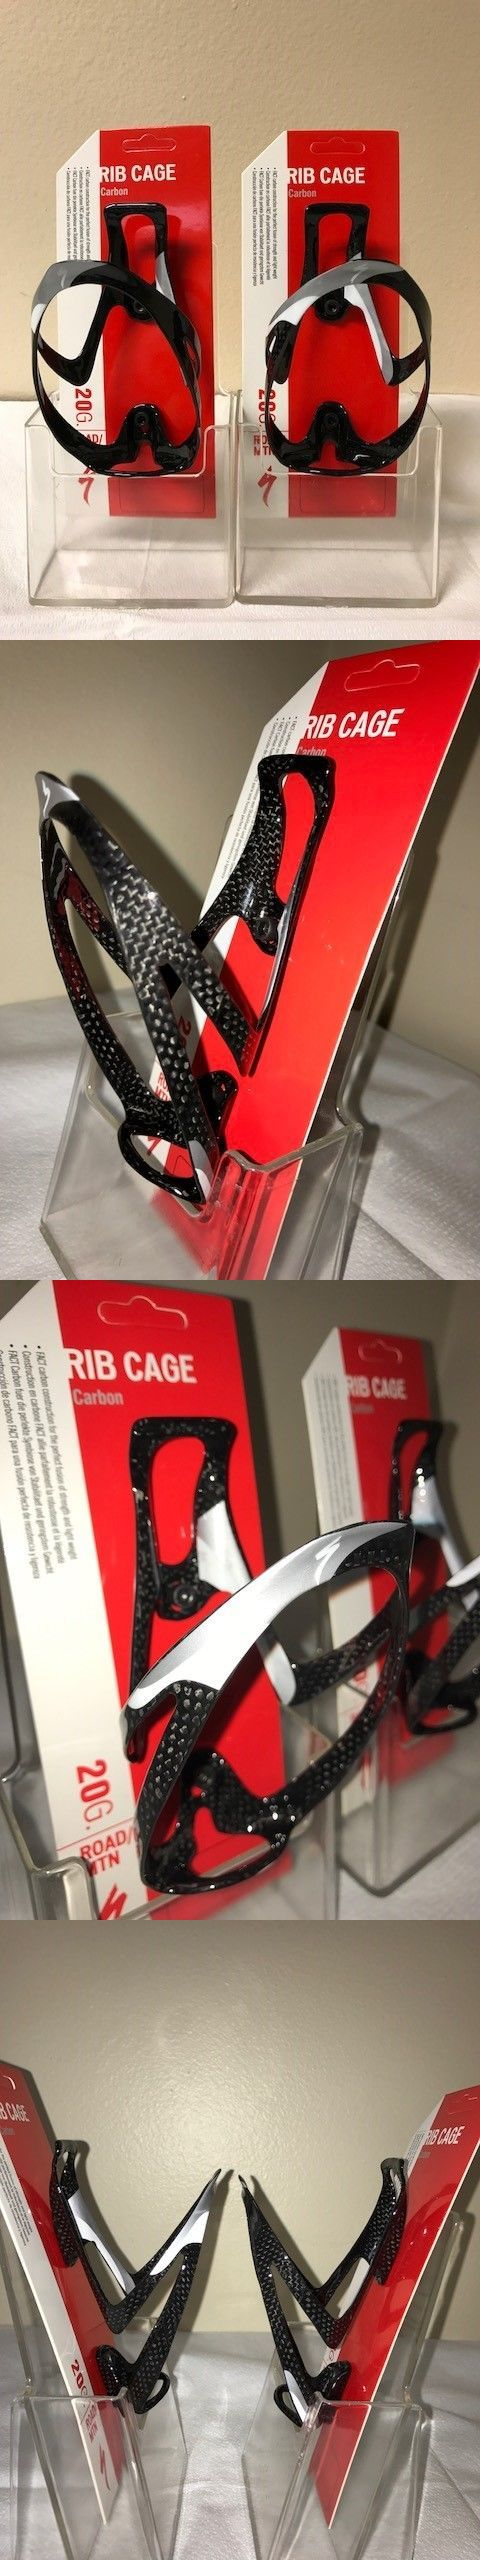 Water Bottles and Cages 62132: Water Bottle Cages Carbon Fiber Specialized Road Bike Or Mtb -> BUY IT NOW ONLY: $55 on eBay!